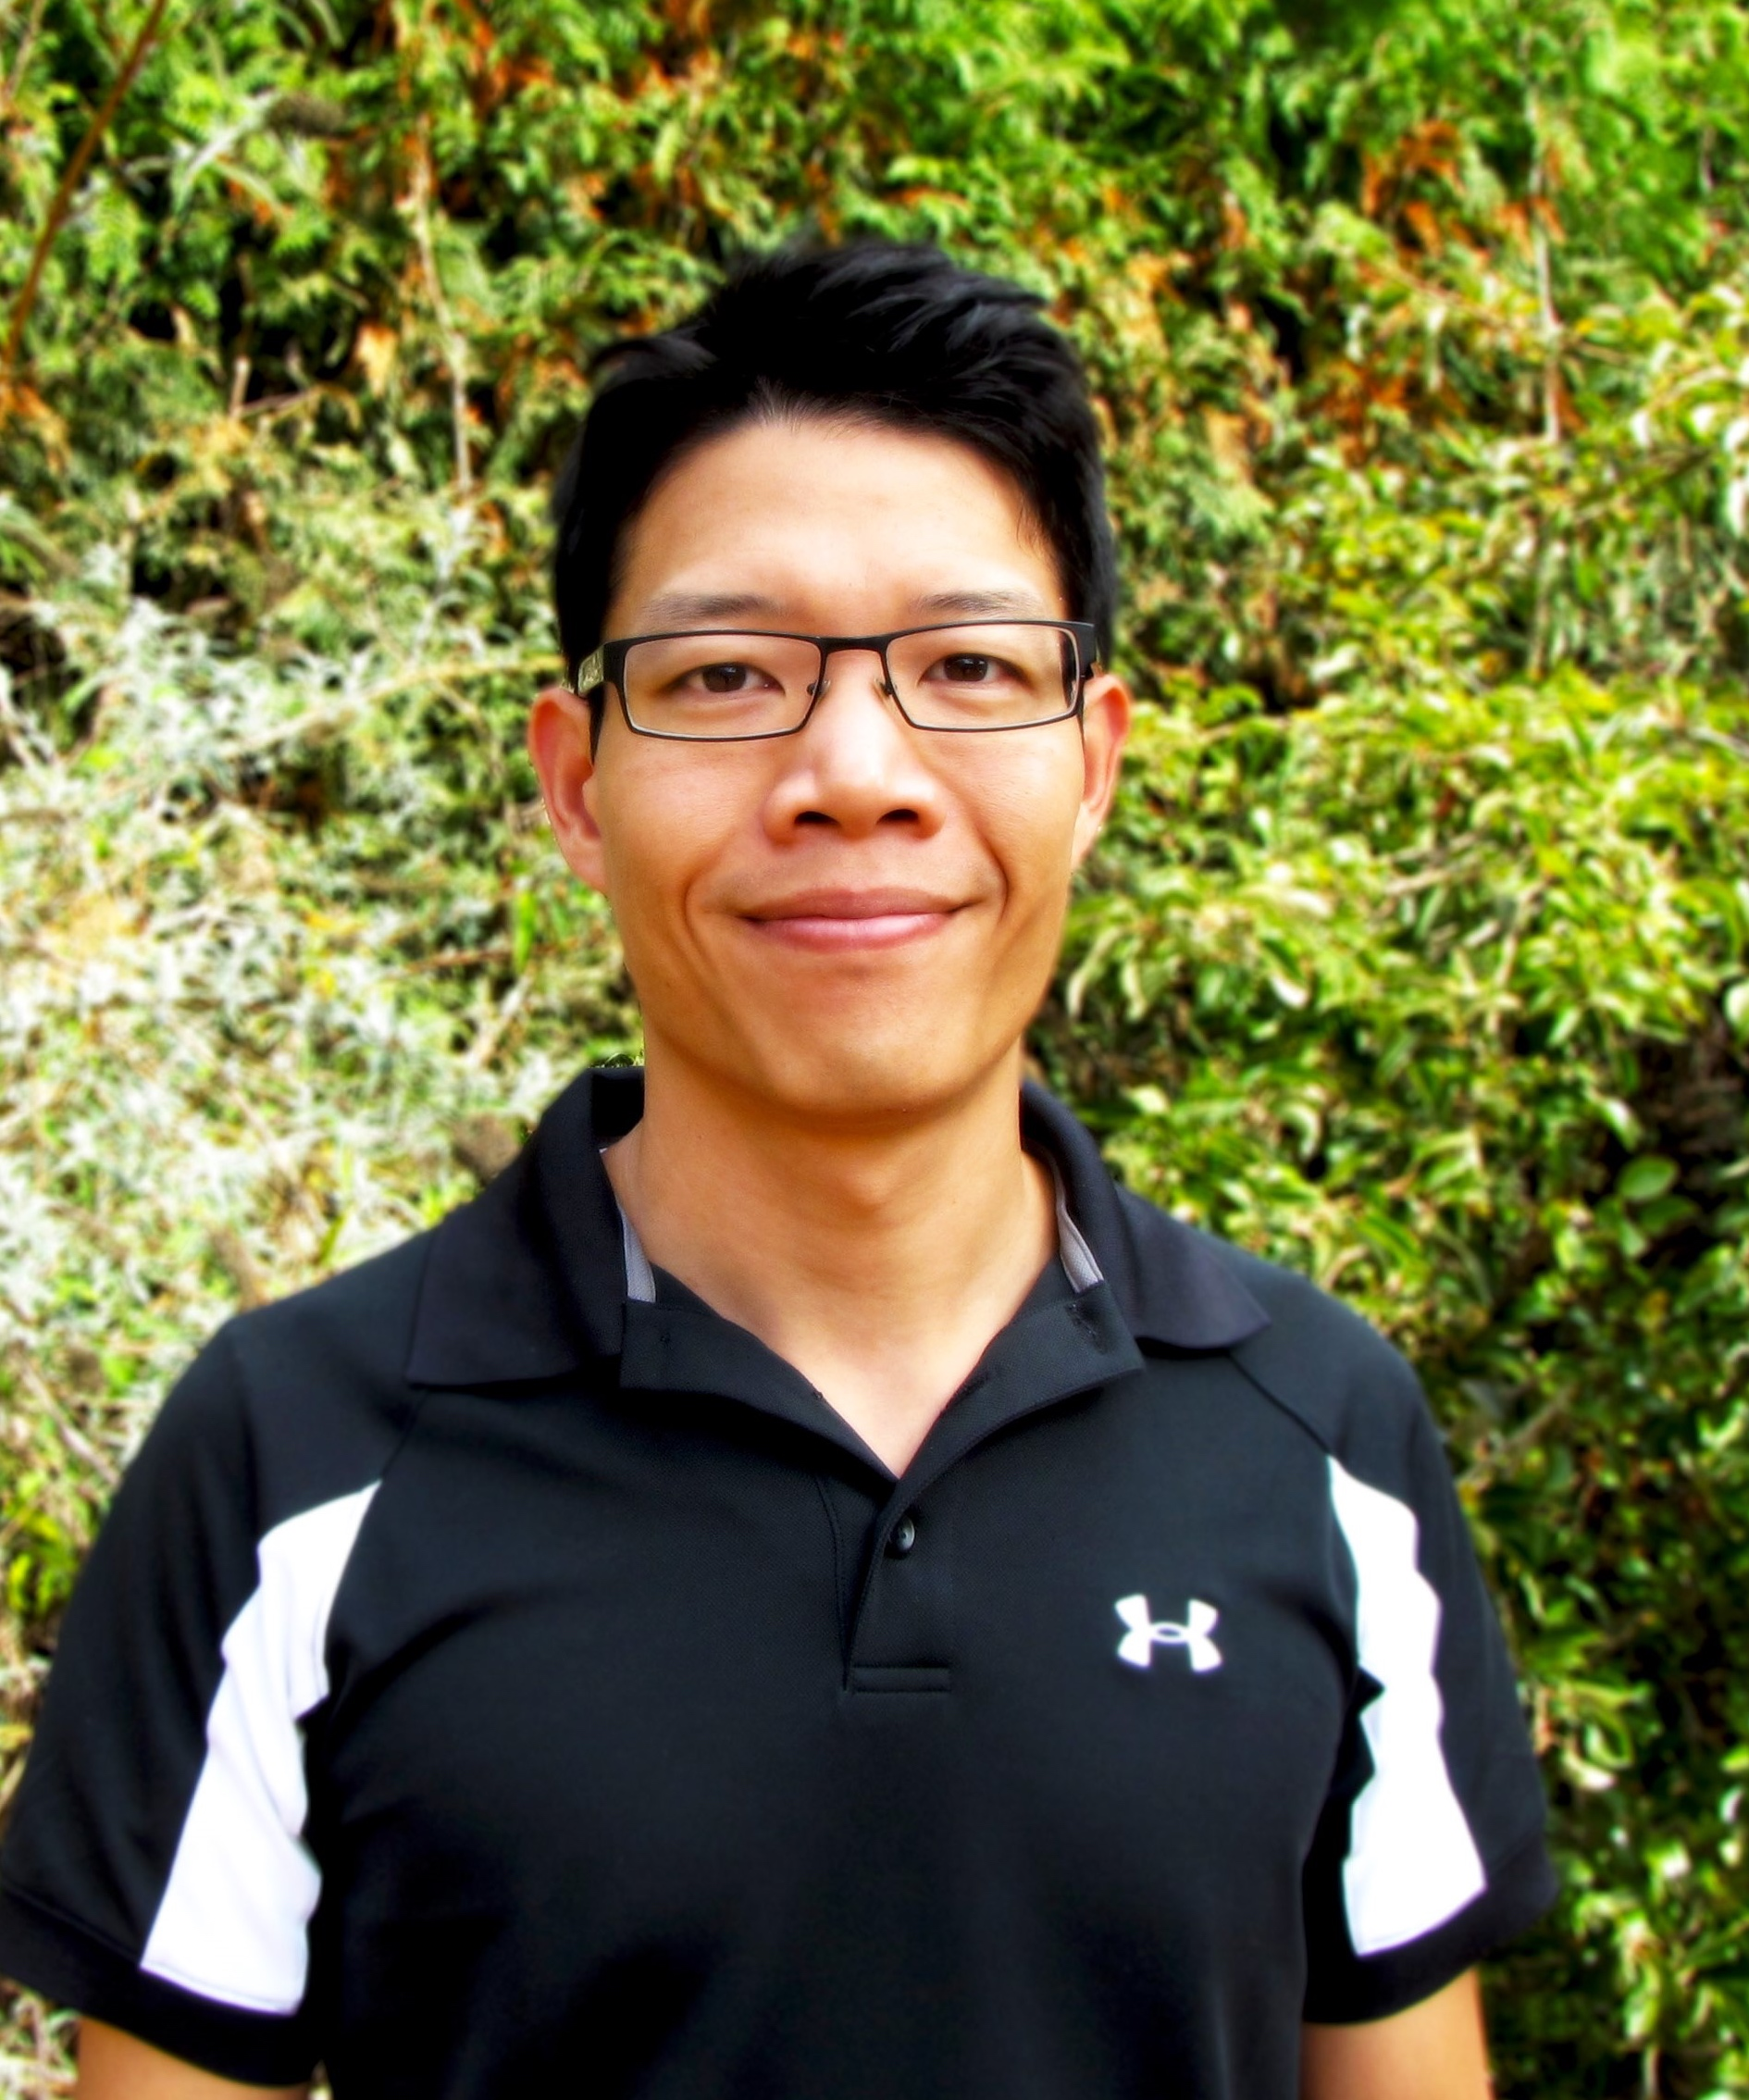 Dr. Brian Lim BSc, DC, Chiropractor